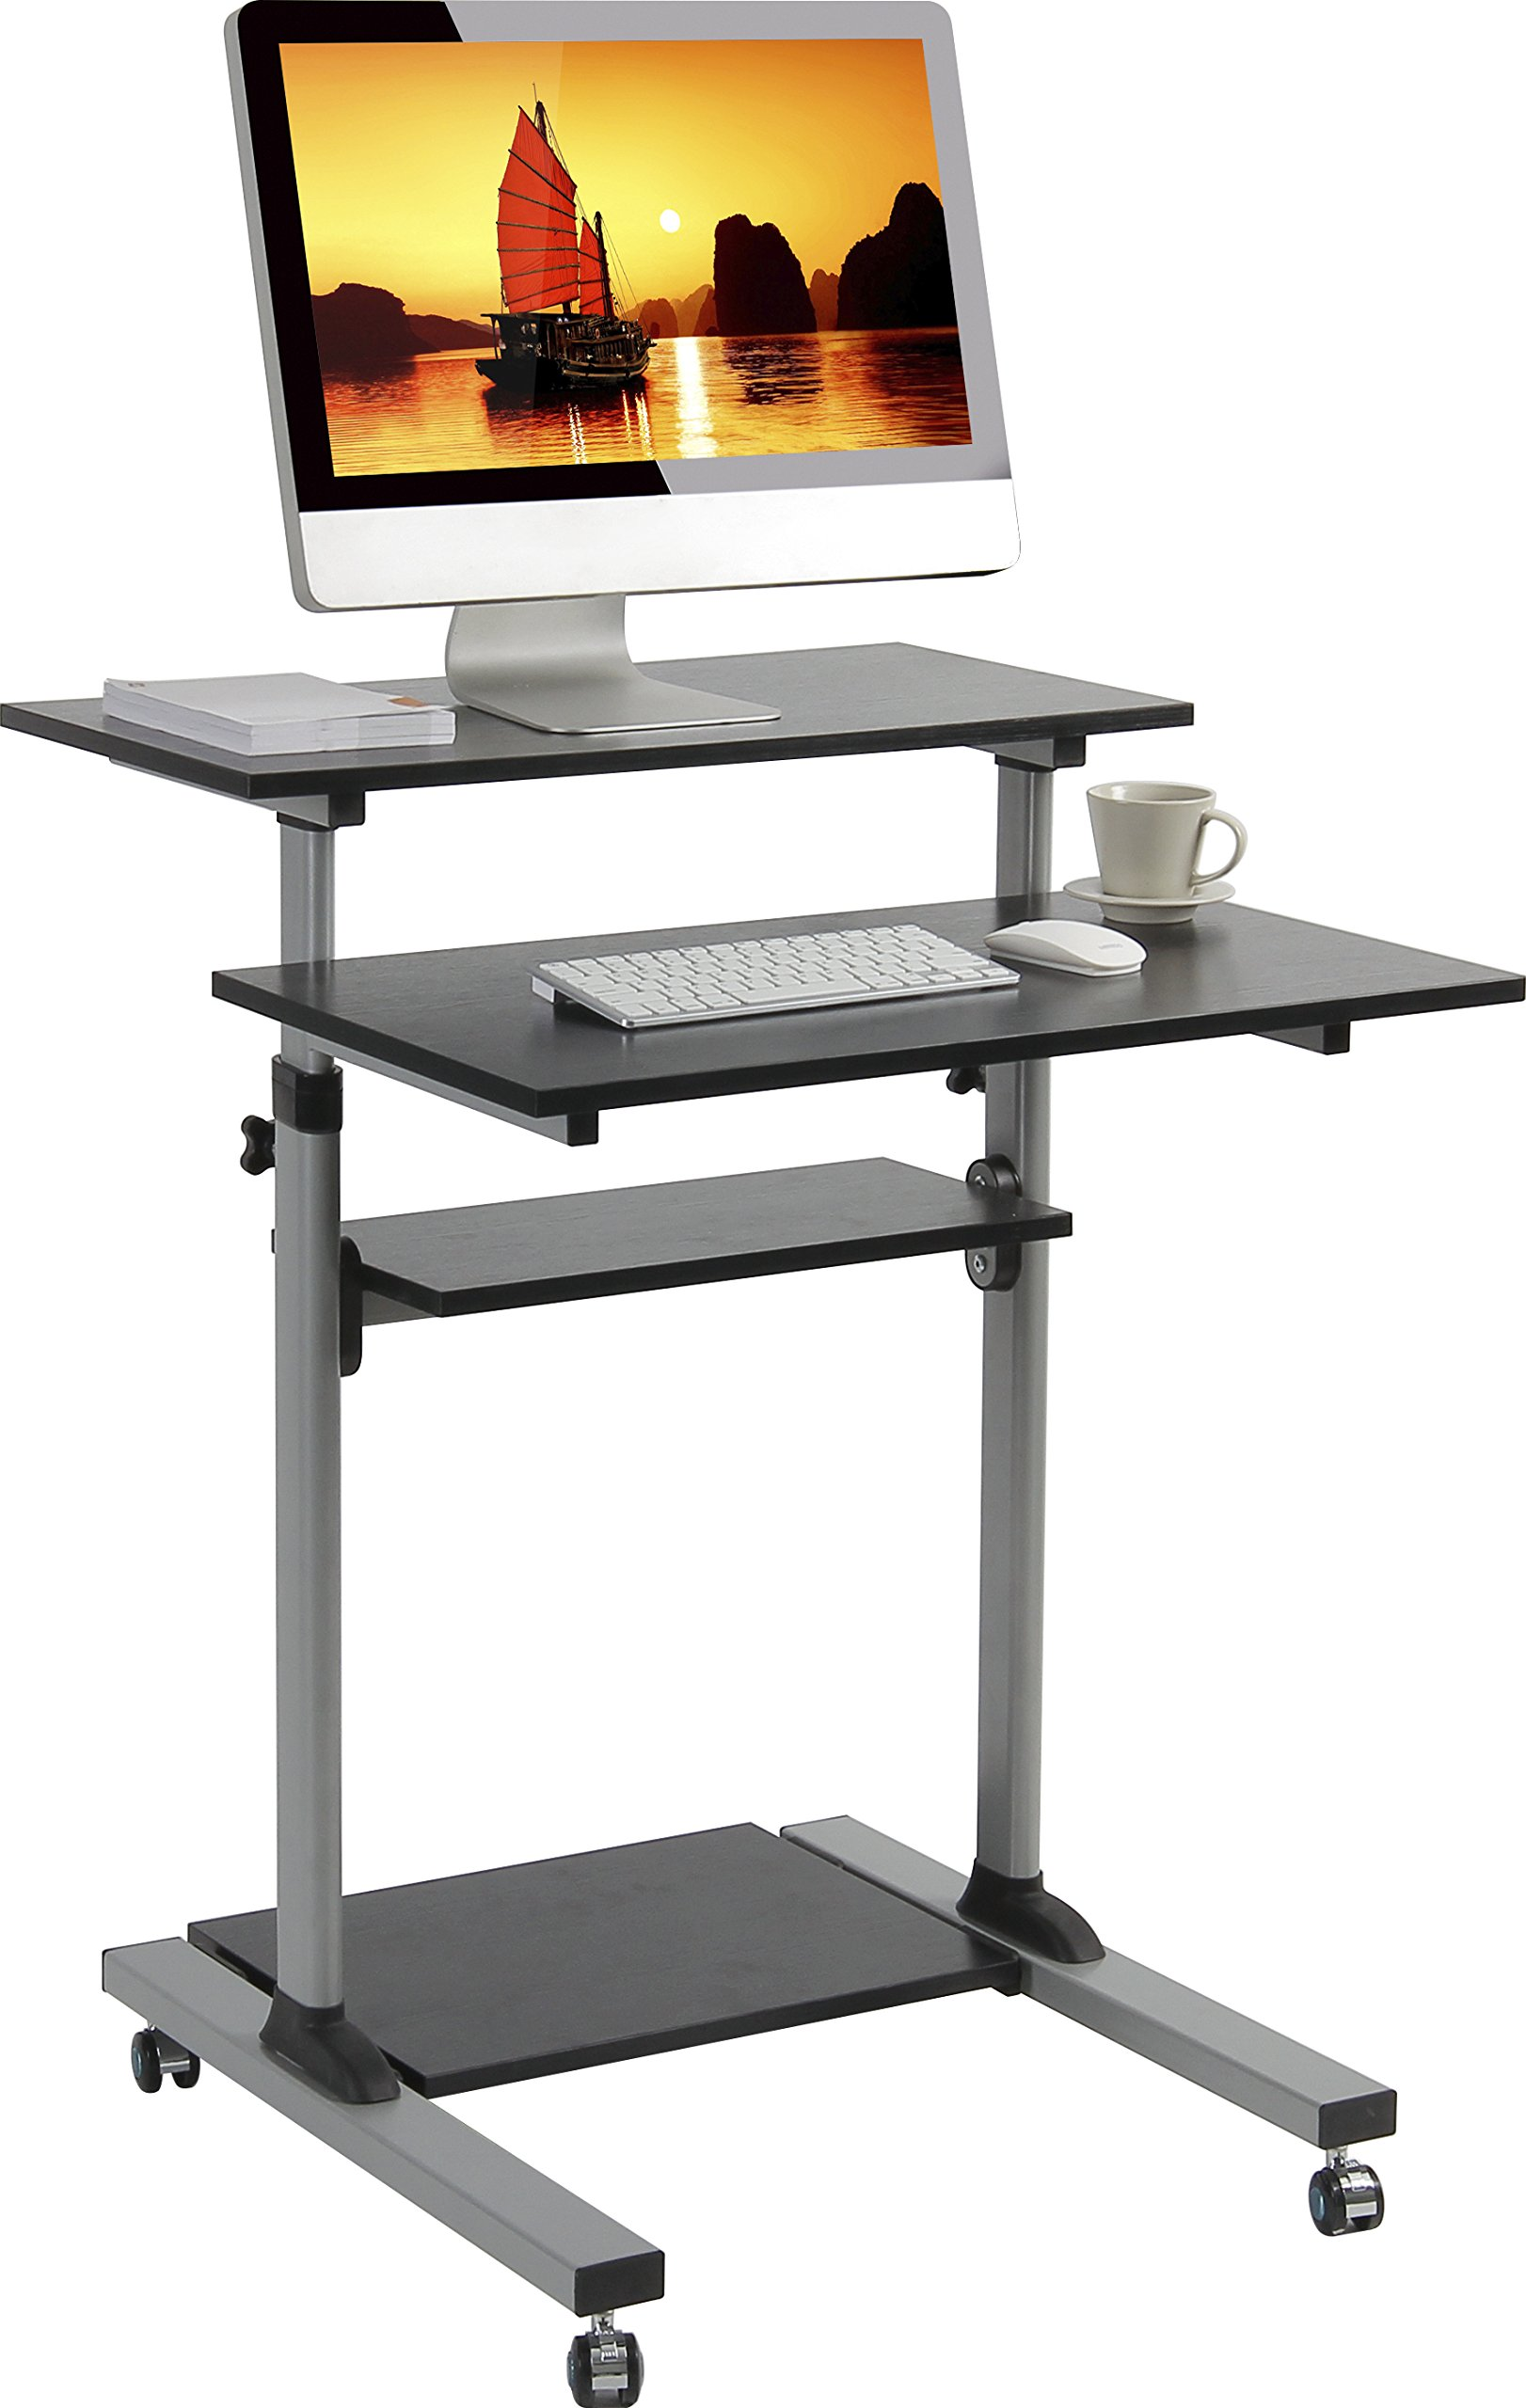 ONKRON Mobile Stand Up Desk Height Adjustable Computer Workstation Rolling Sit Stand Desk Cart with Keyboard Tray Presentation Cart W1R Silver